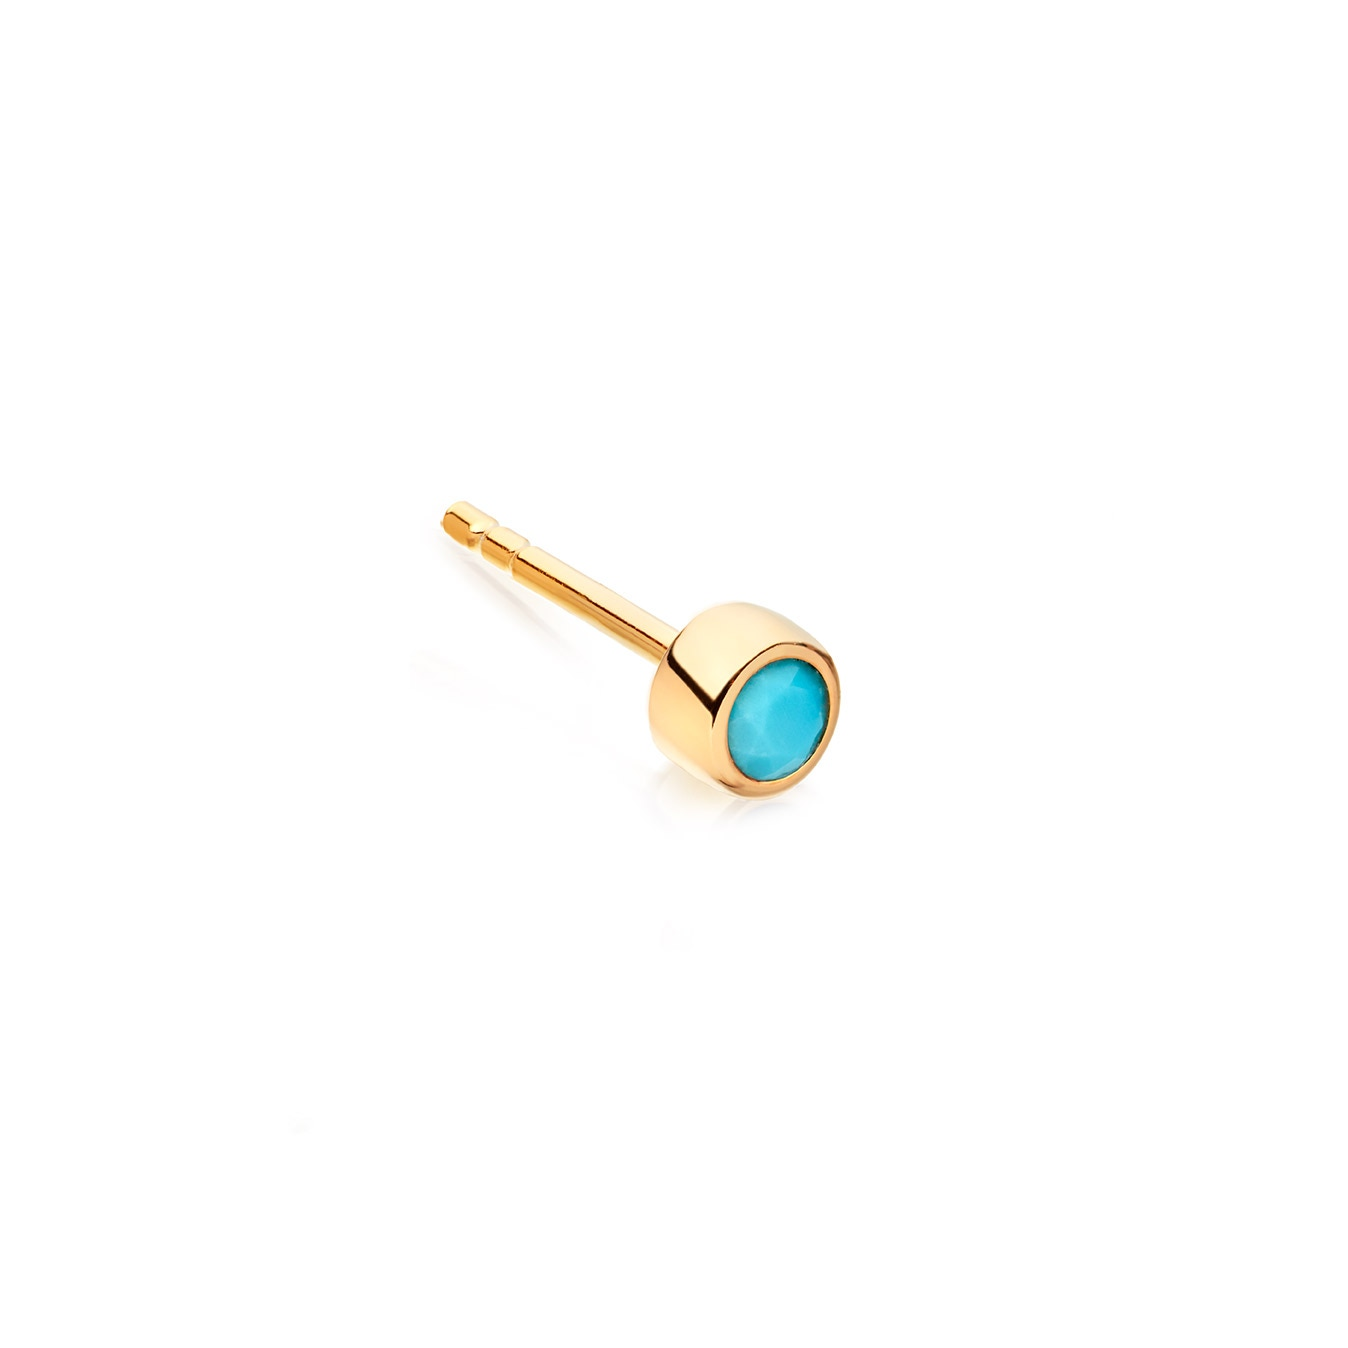 Mini Turquoise Single Stilla Stud Earring